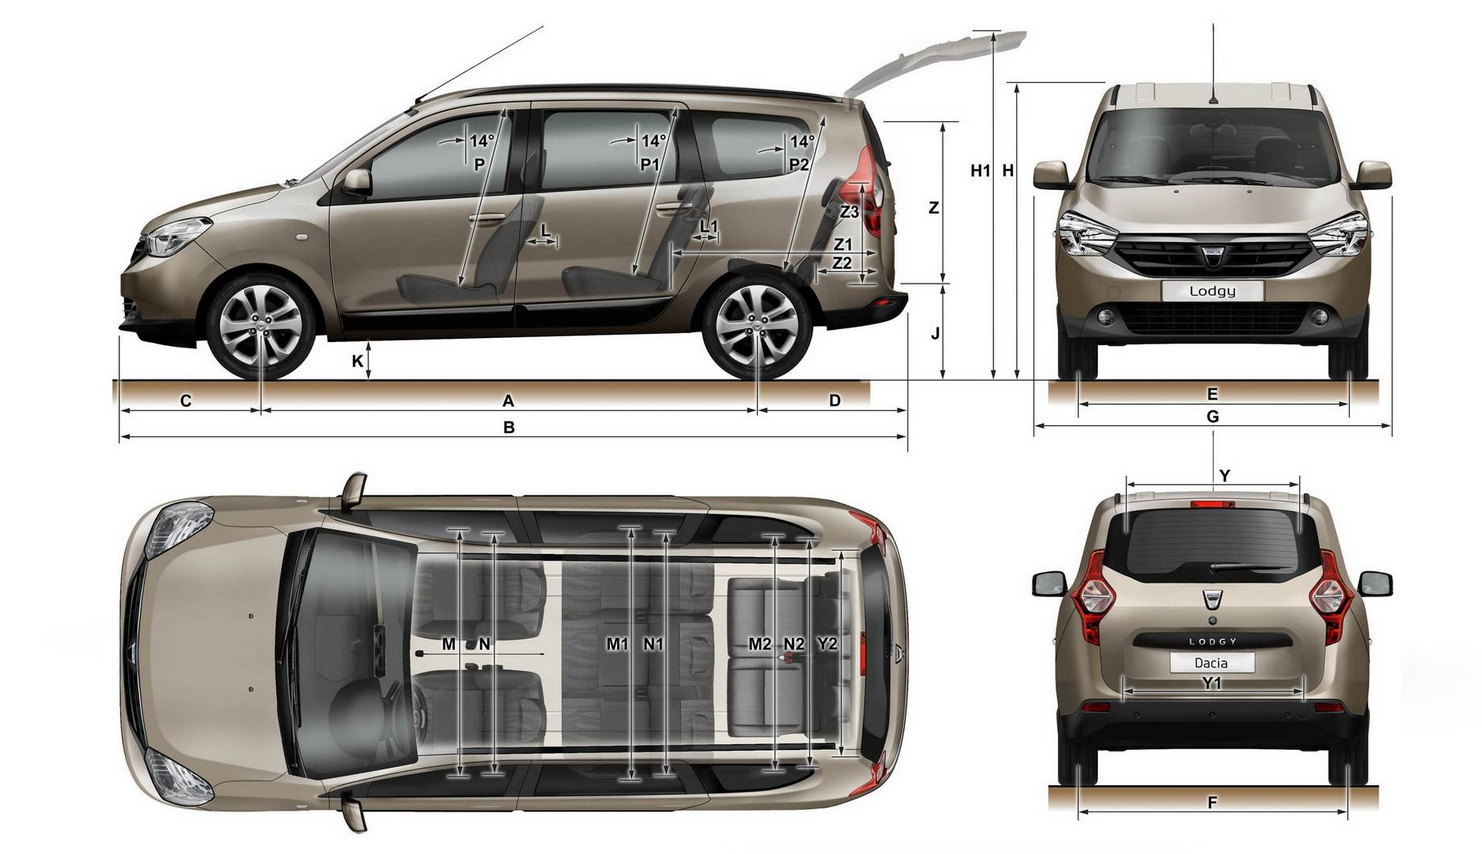 projet de changement de voiture pour une dacia dacia forum marques. Black Bedroom Furniture Sets. Home Design Ideas